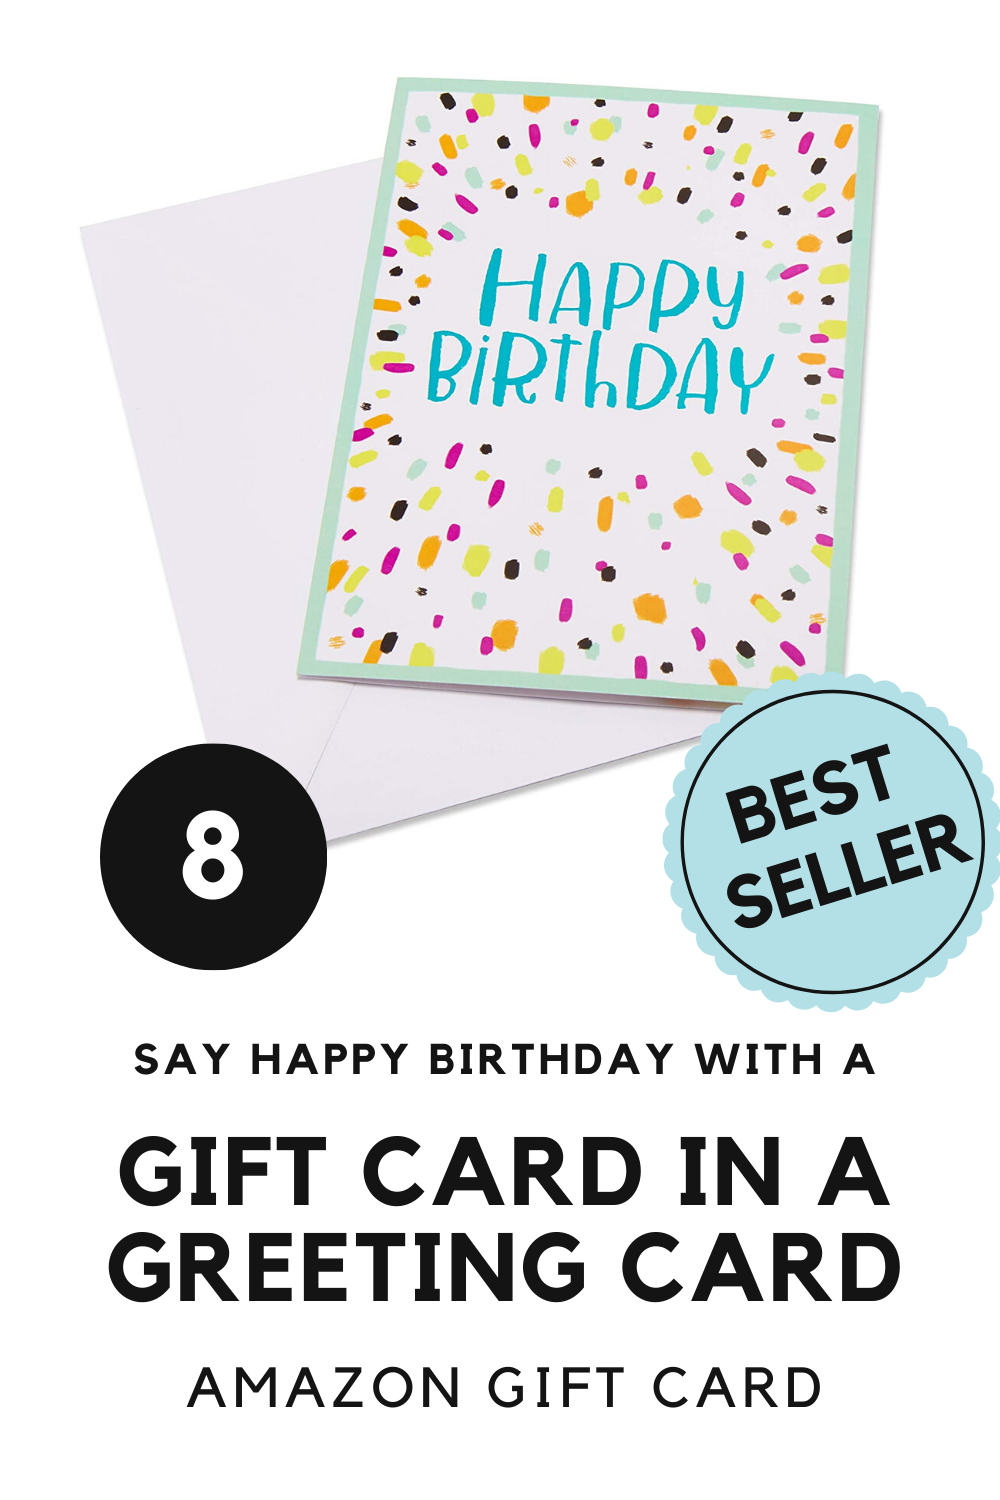 Happy Birthday Wishes For A Friend Happy Birthday Greeting Happy Birthday W Cards For Boyfriend Happy Birthday Wishes For A Friend Happy Birthday Greetings